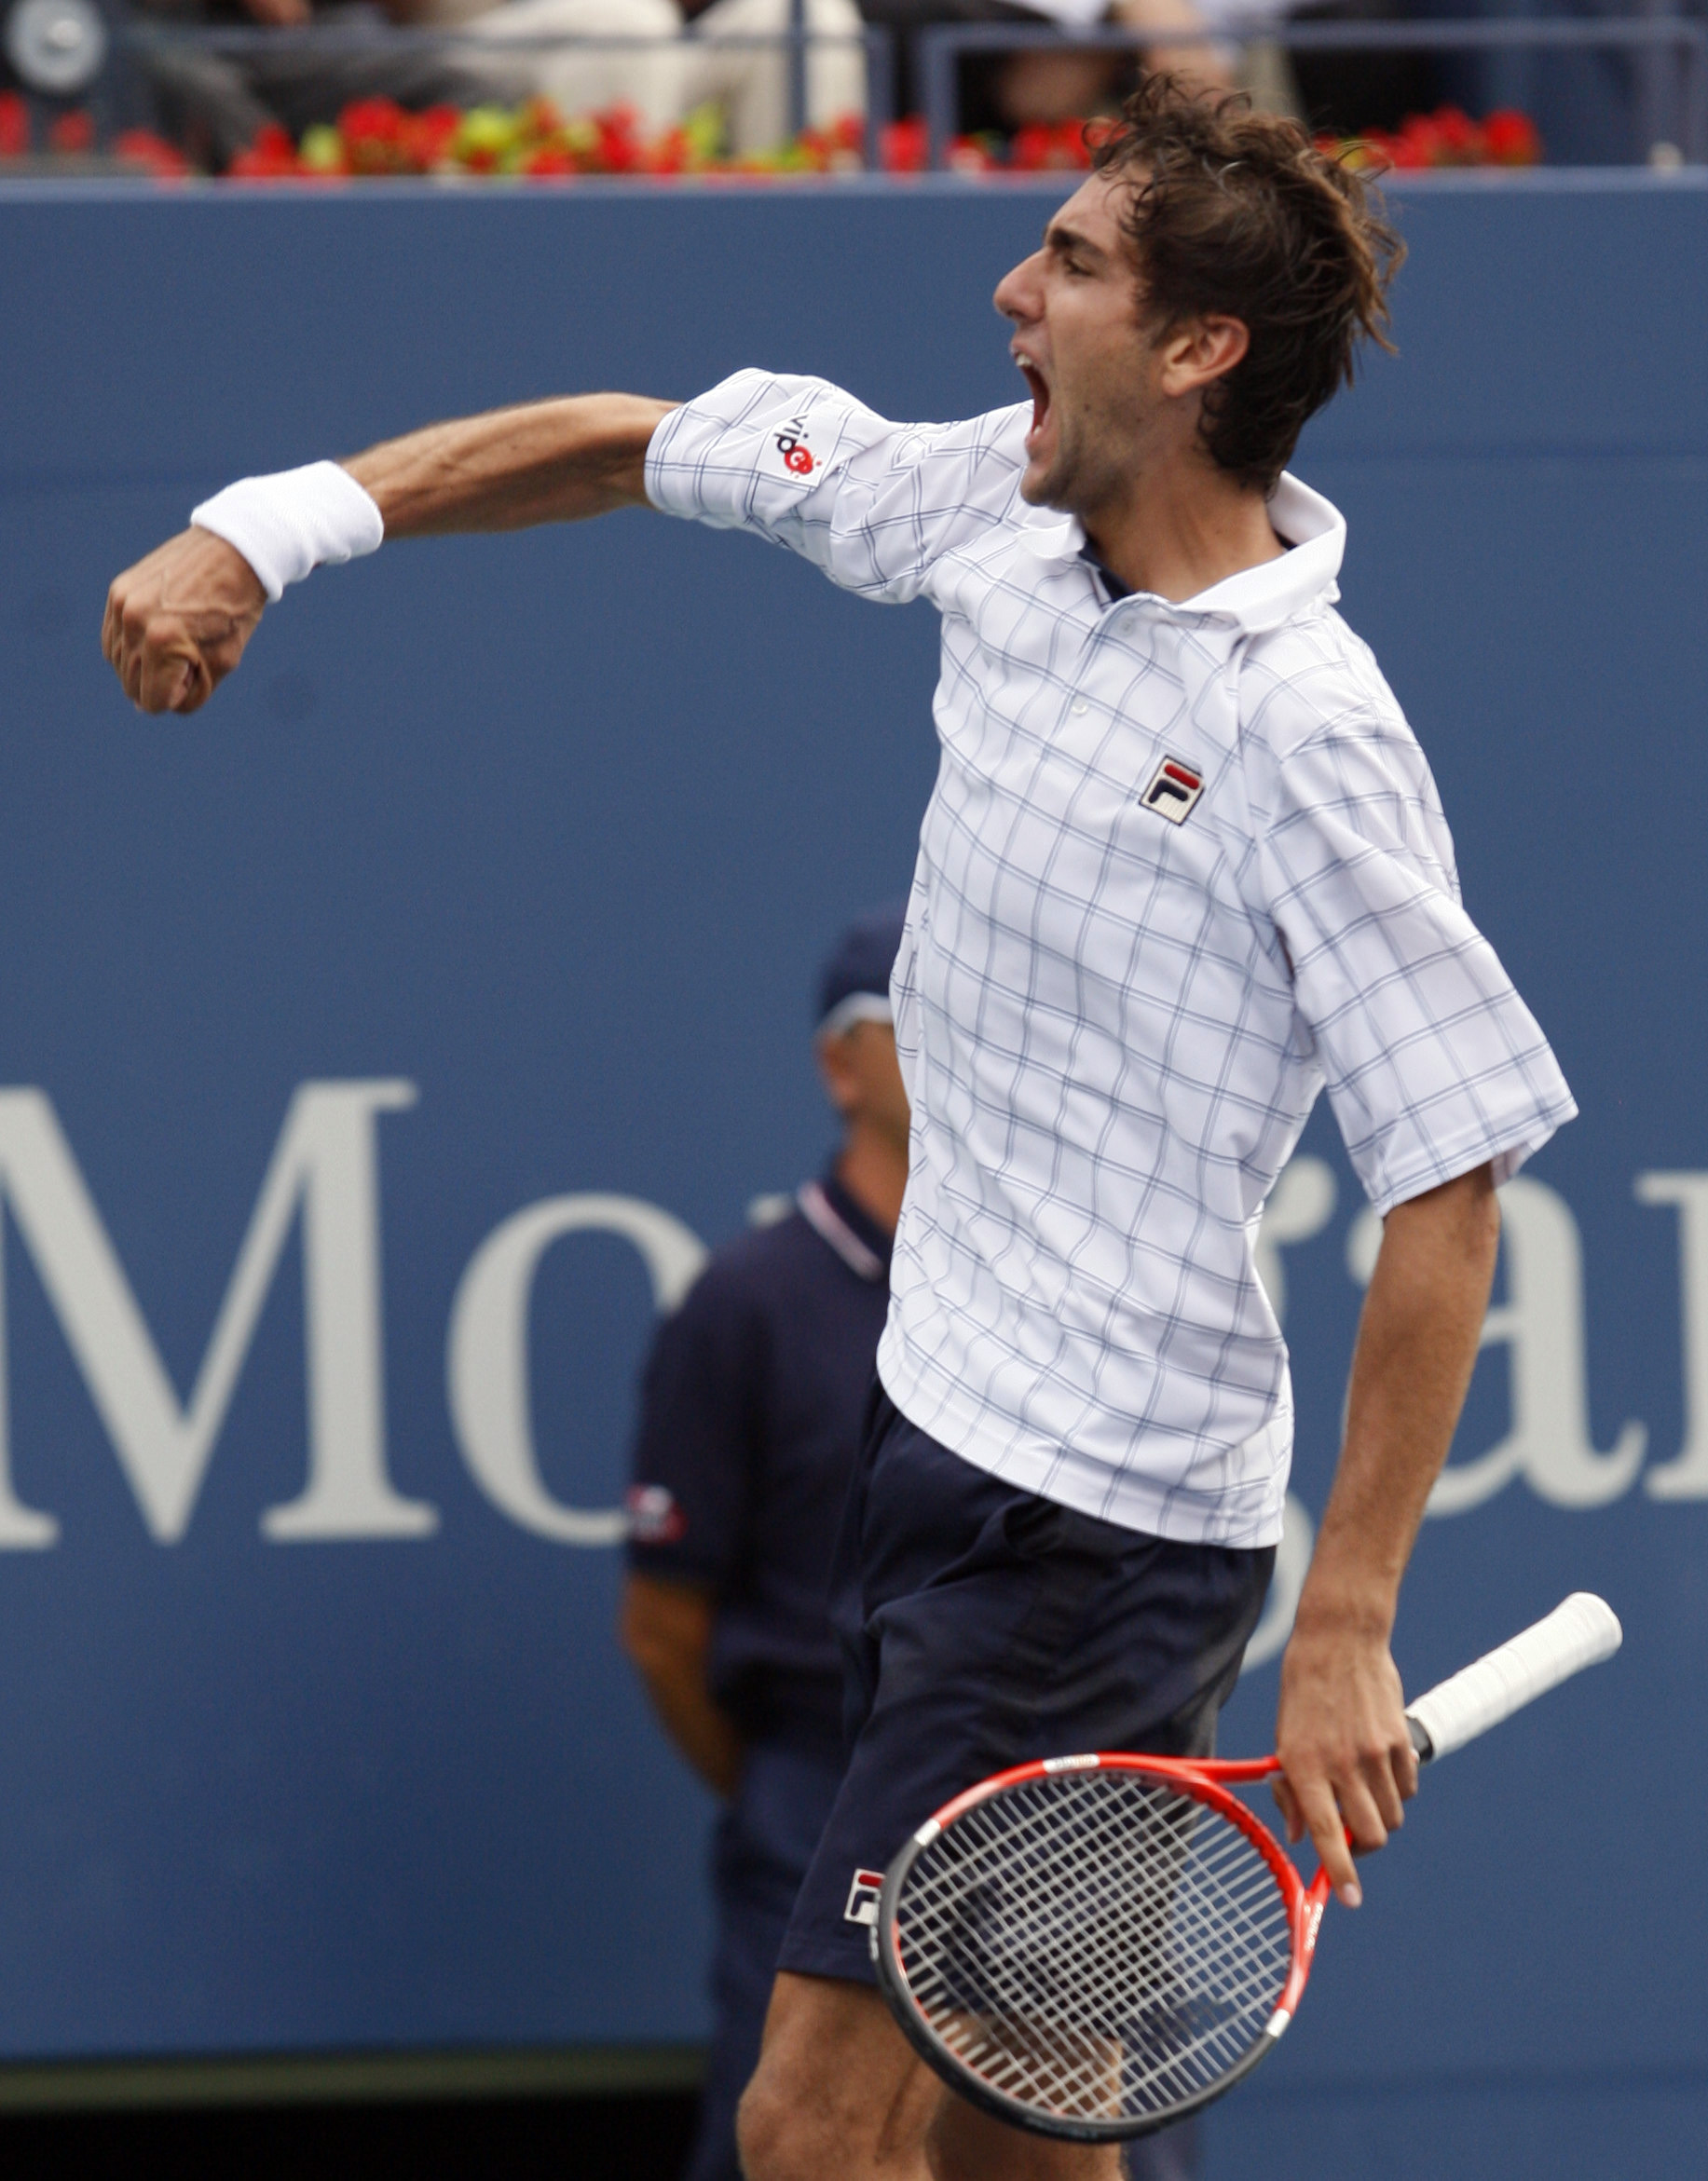 Cilic murray betting on sports cs go betting series cravings